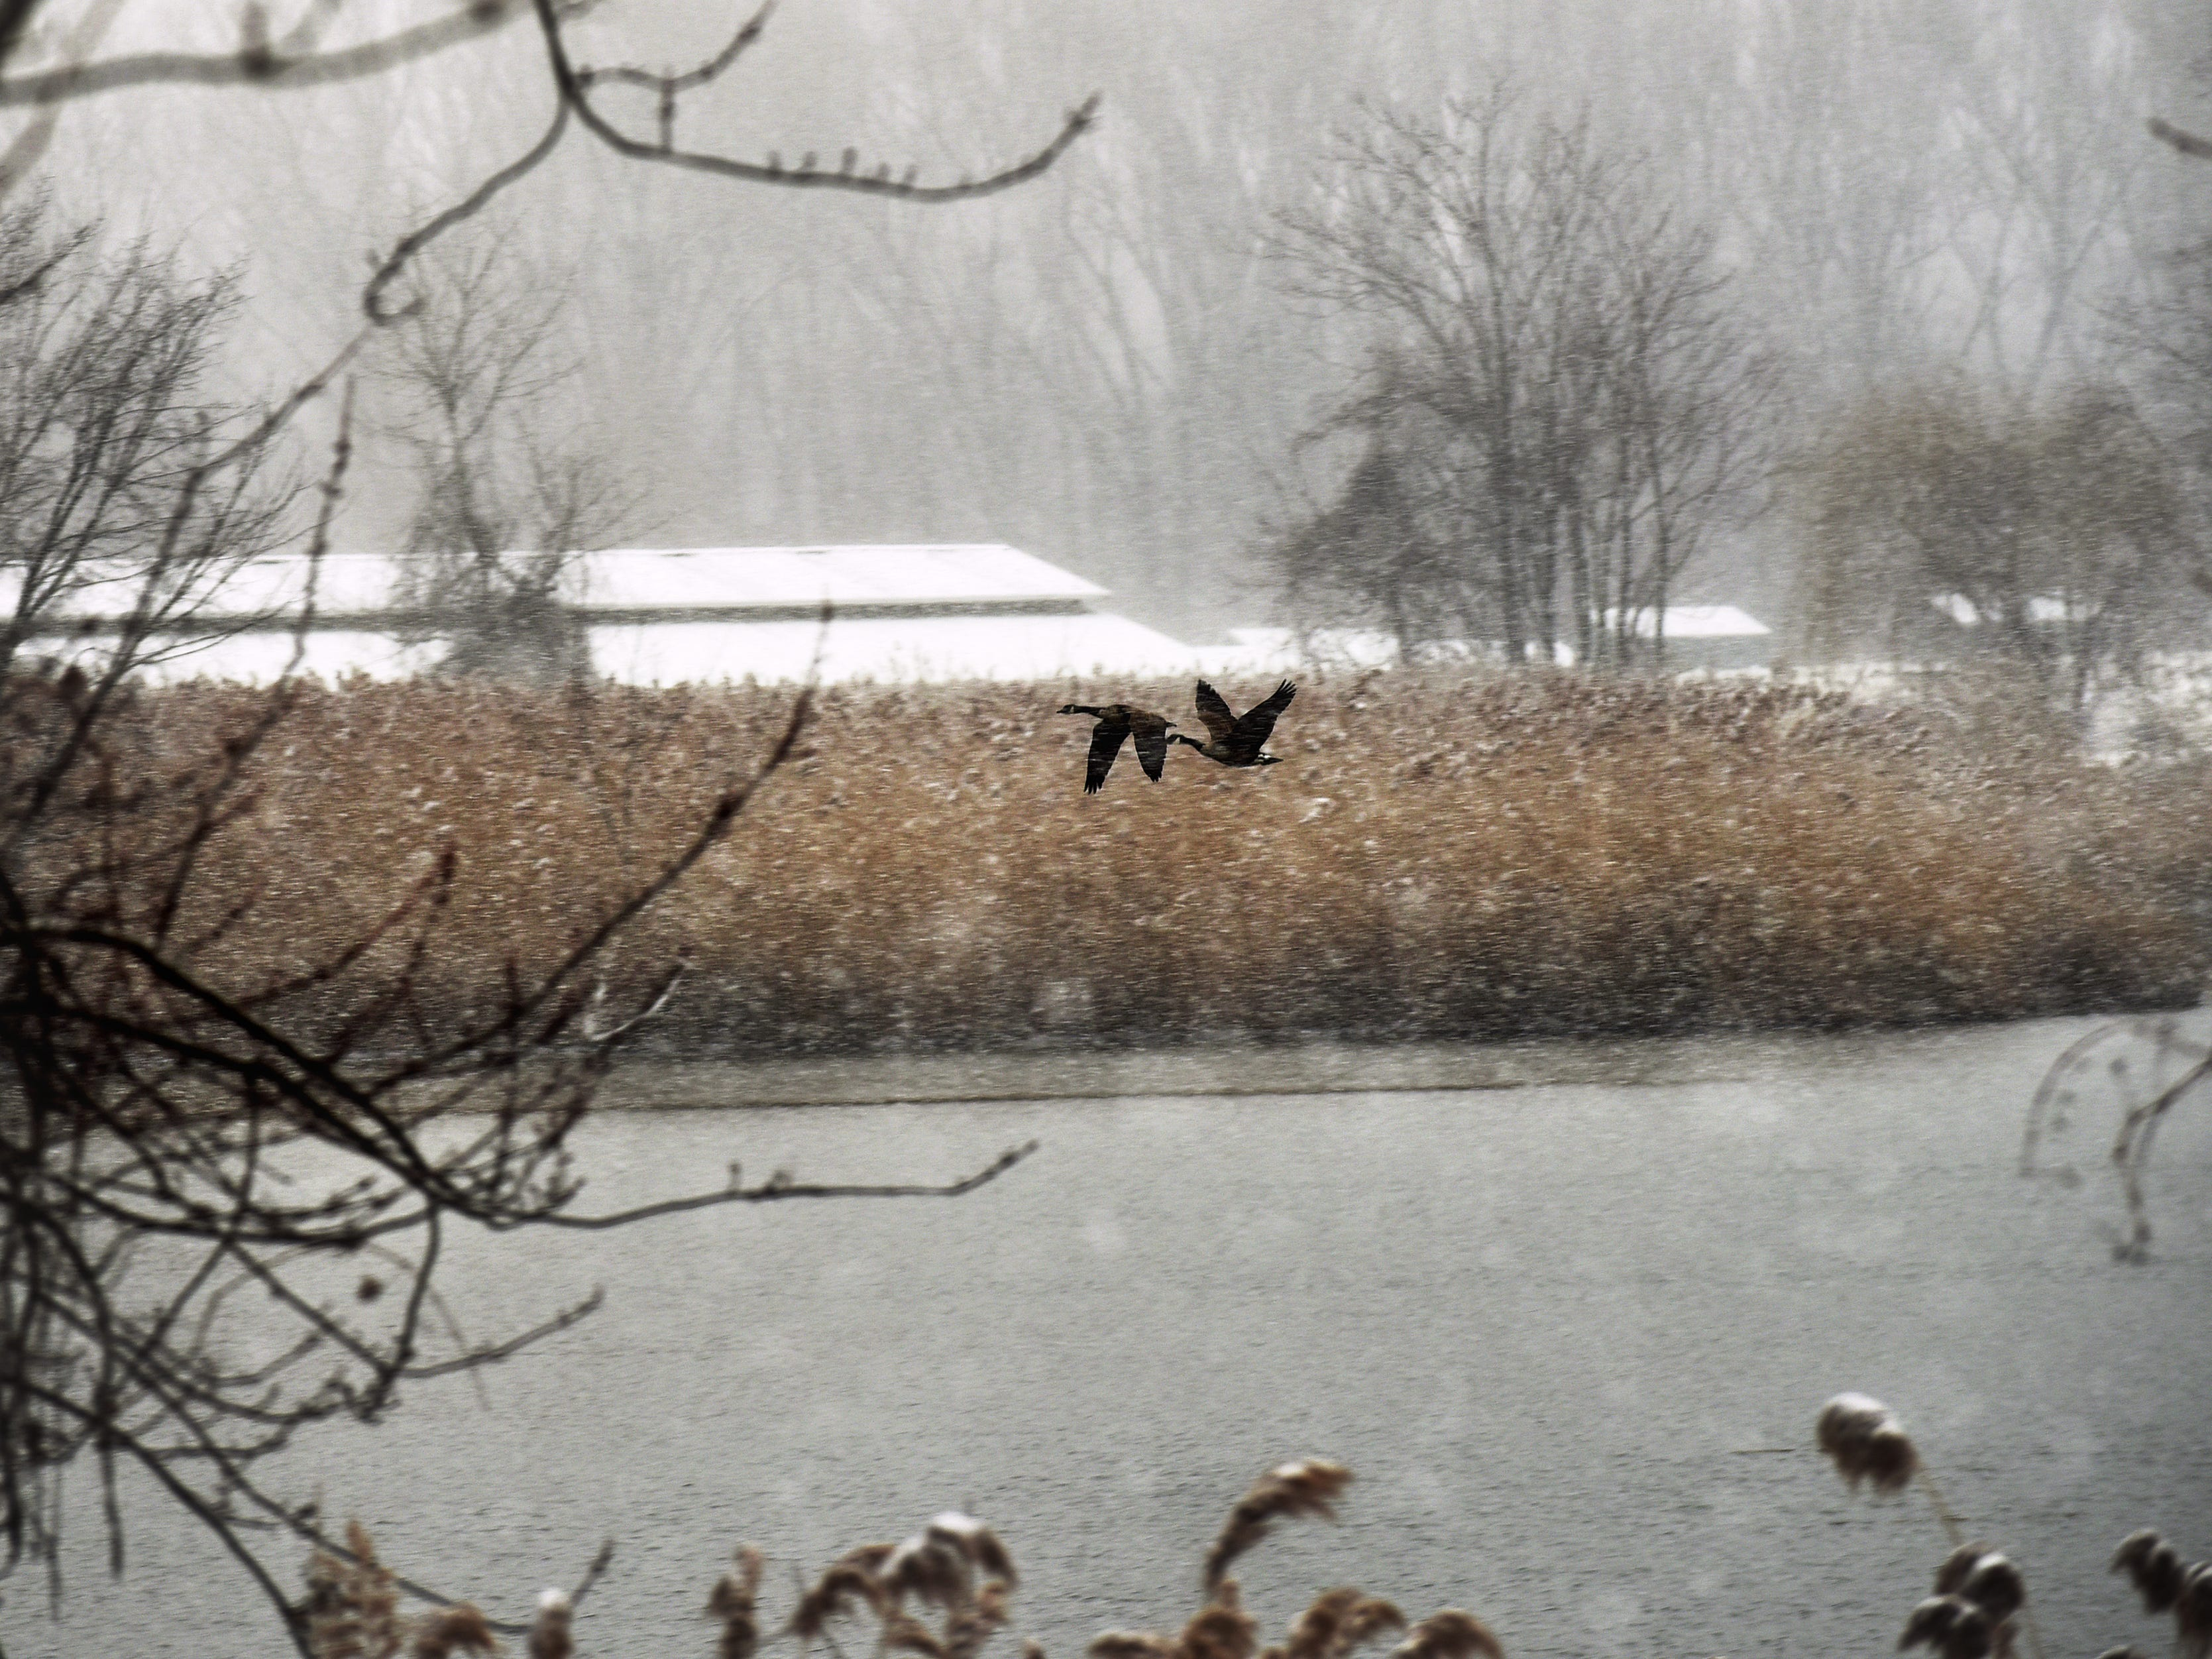 Geese fly above Overpeck Creek as snow falls in Overpeck Park in Ridgefield Park on Wednesday February 20, 2019.